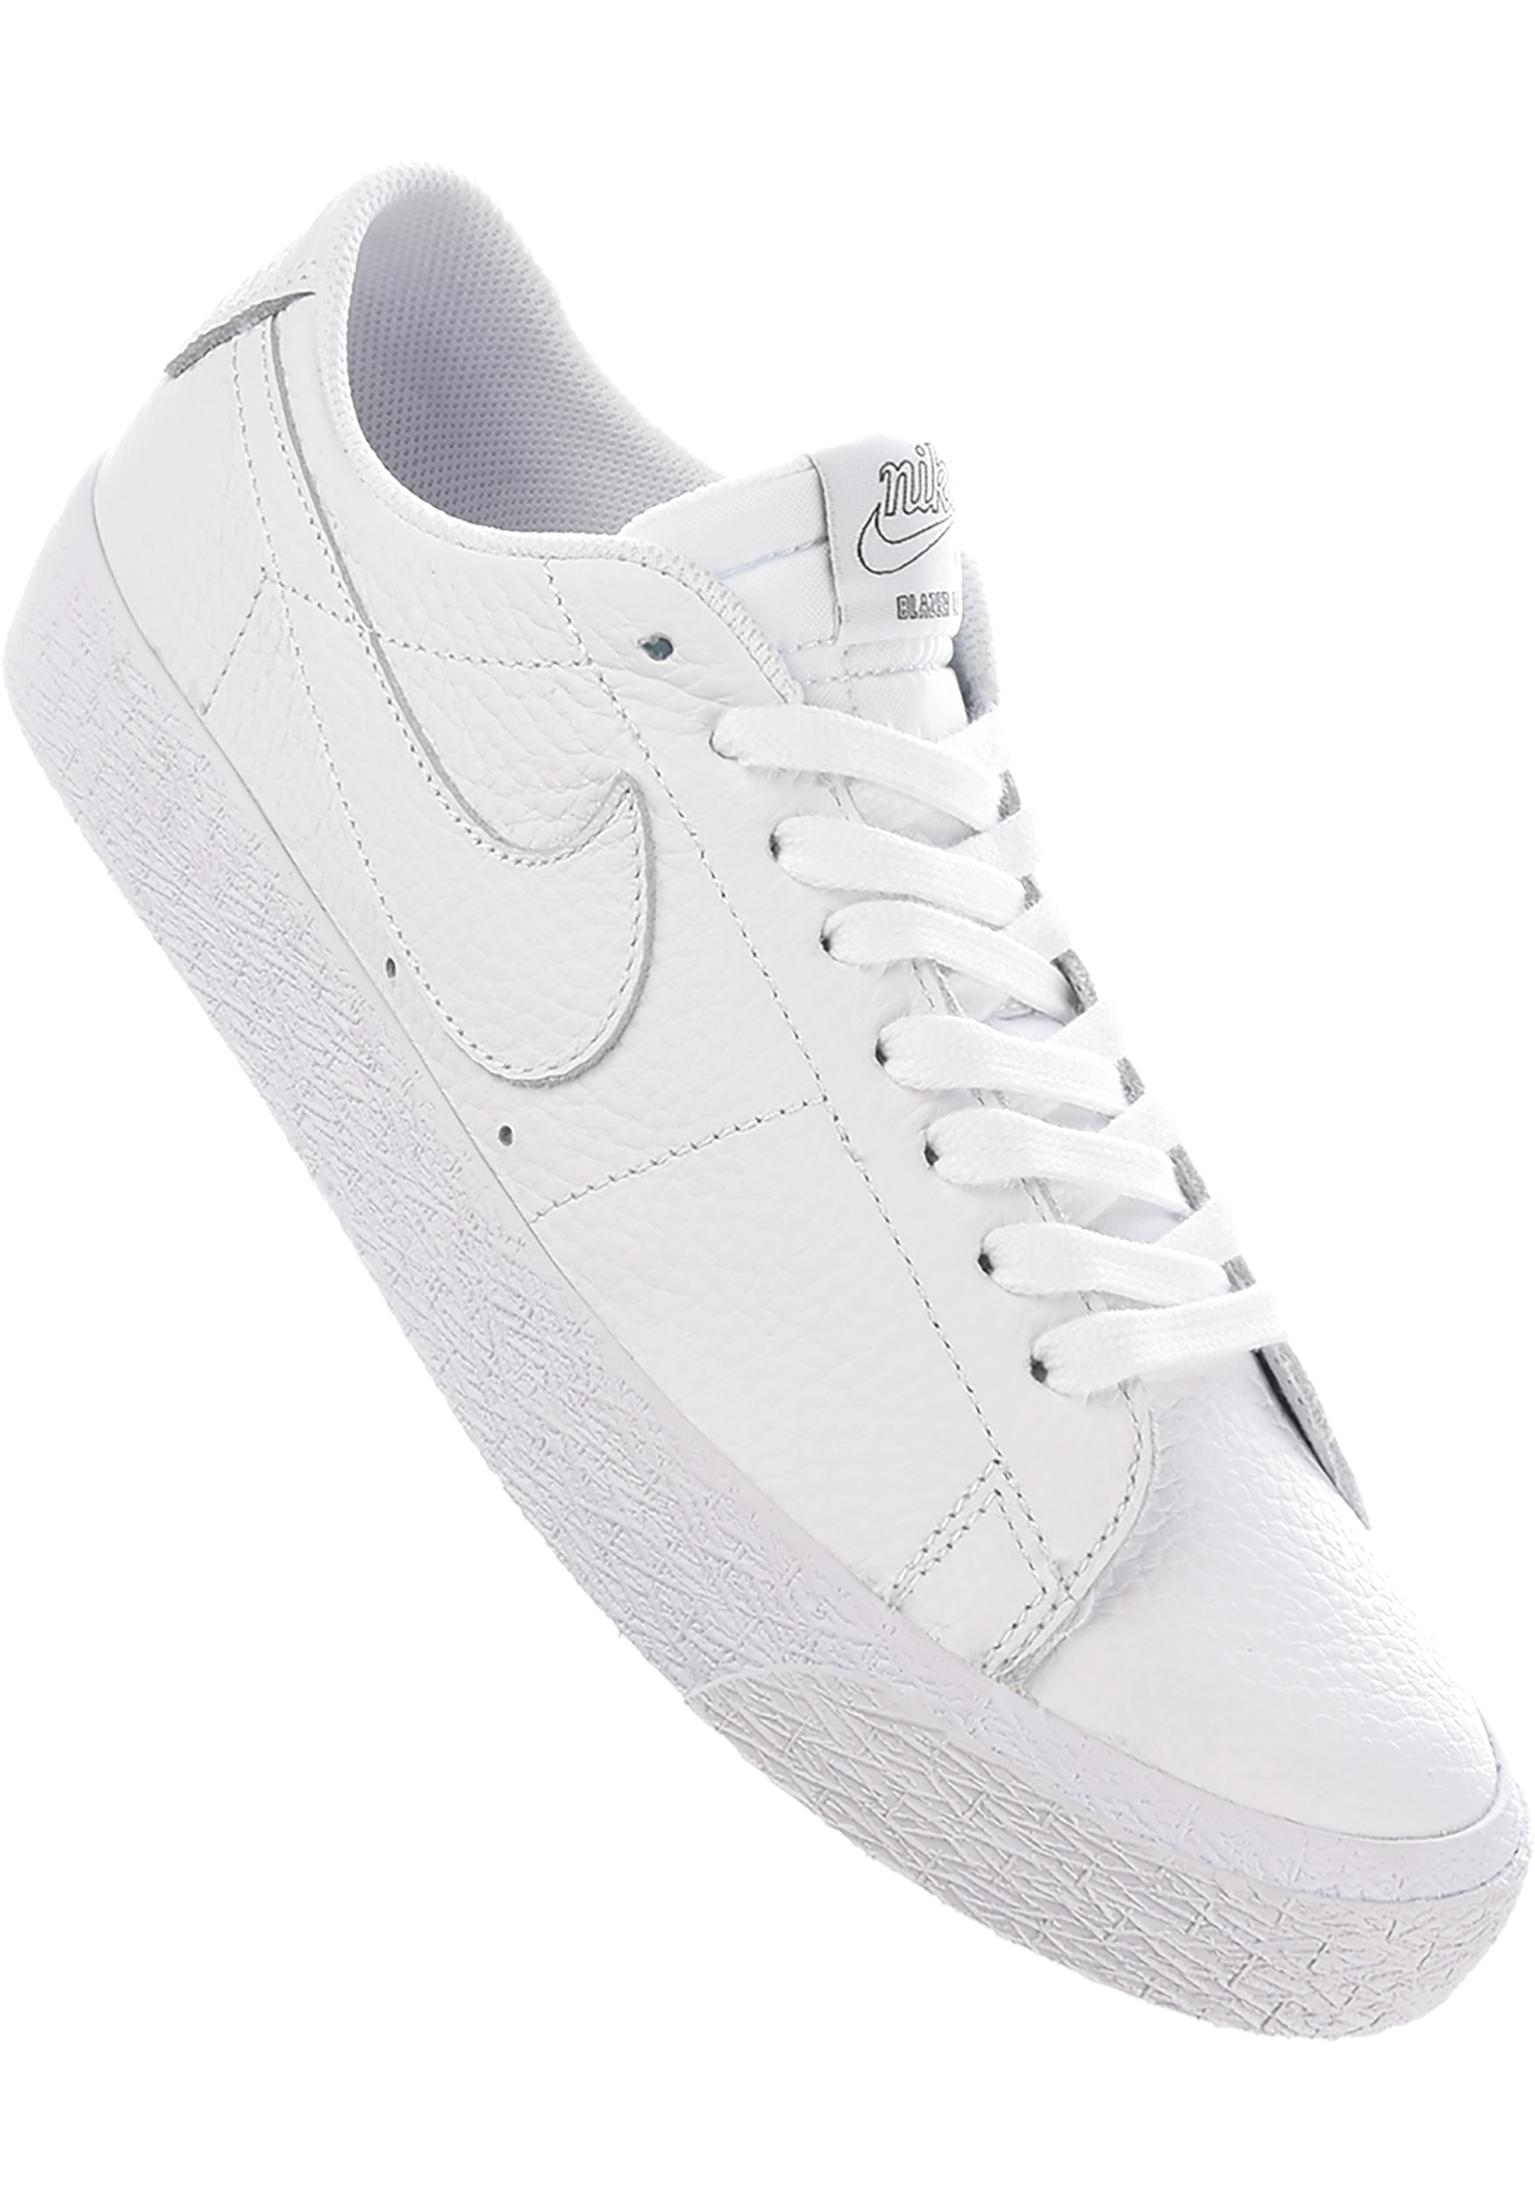 huge selection of 89acb b3bcf Zoom Blazer Low NBA Nike SB All Shoes in white-rushblue for